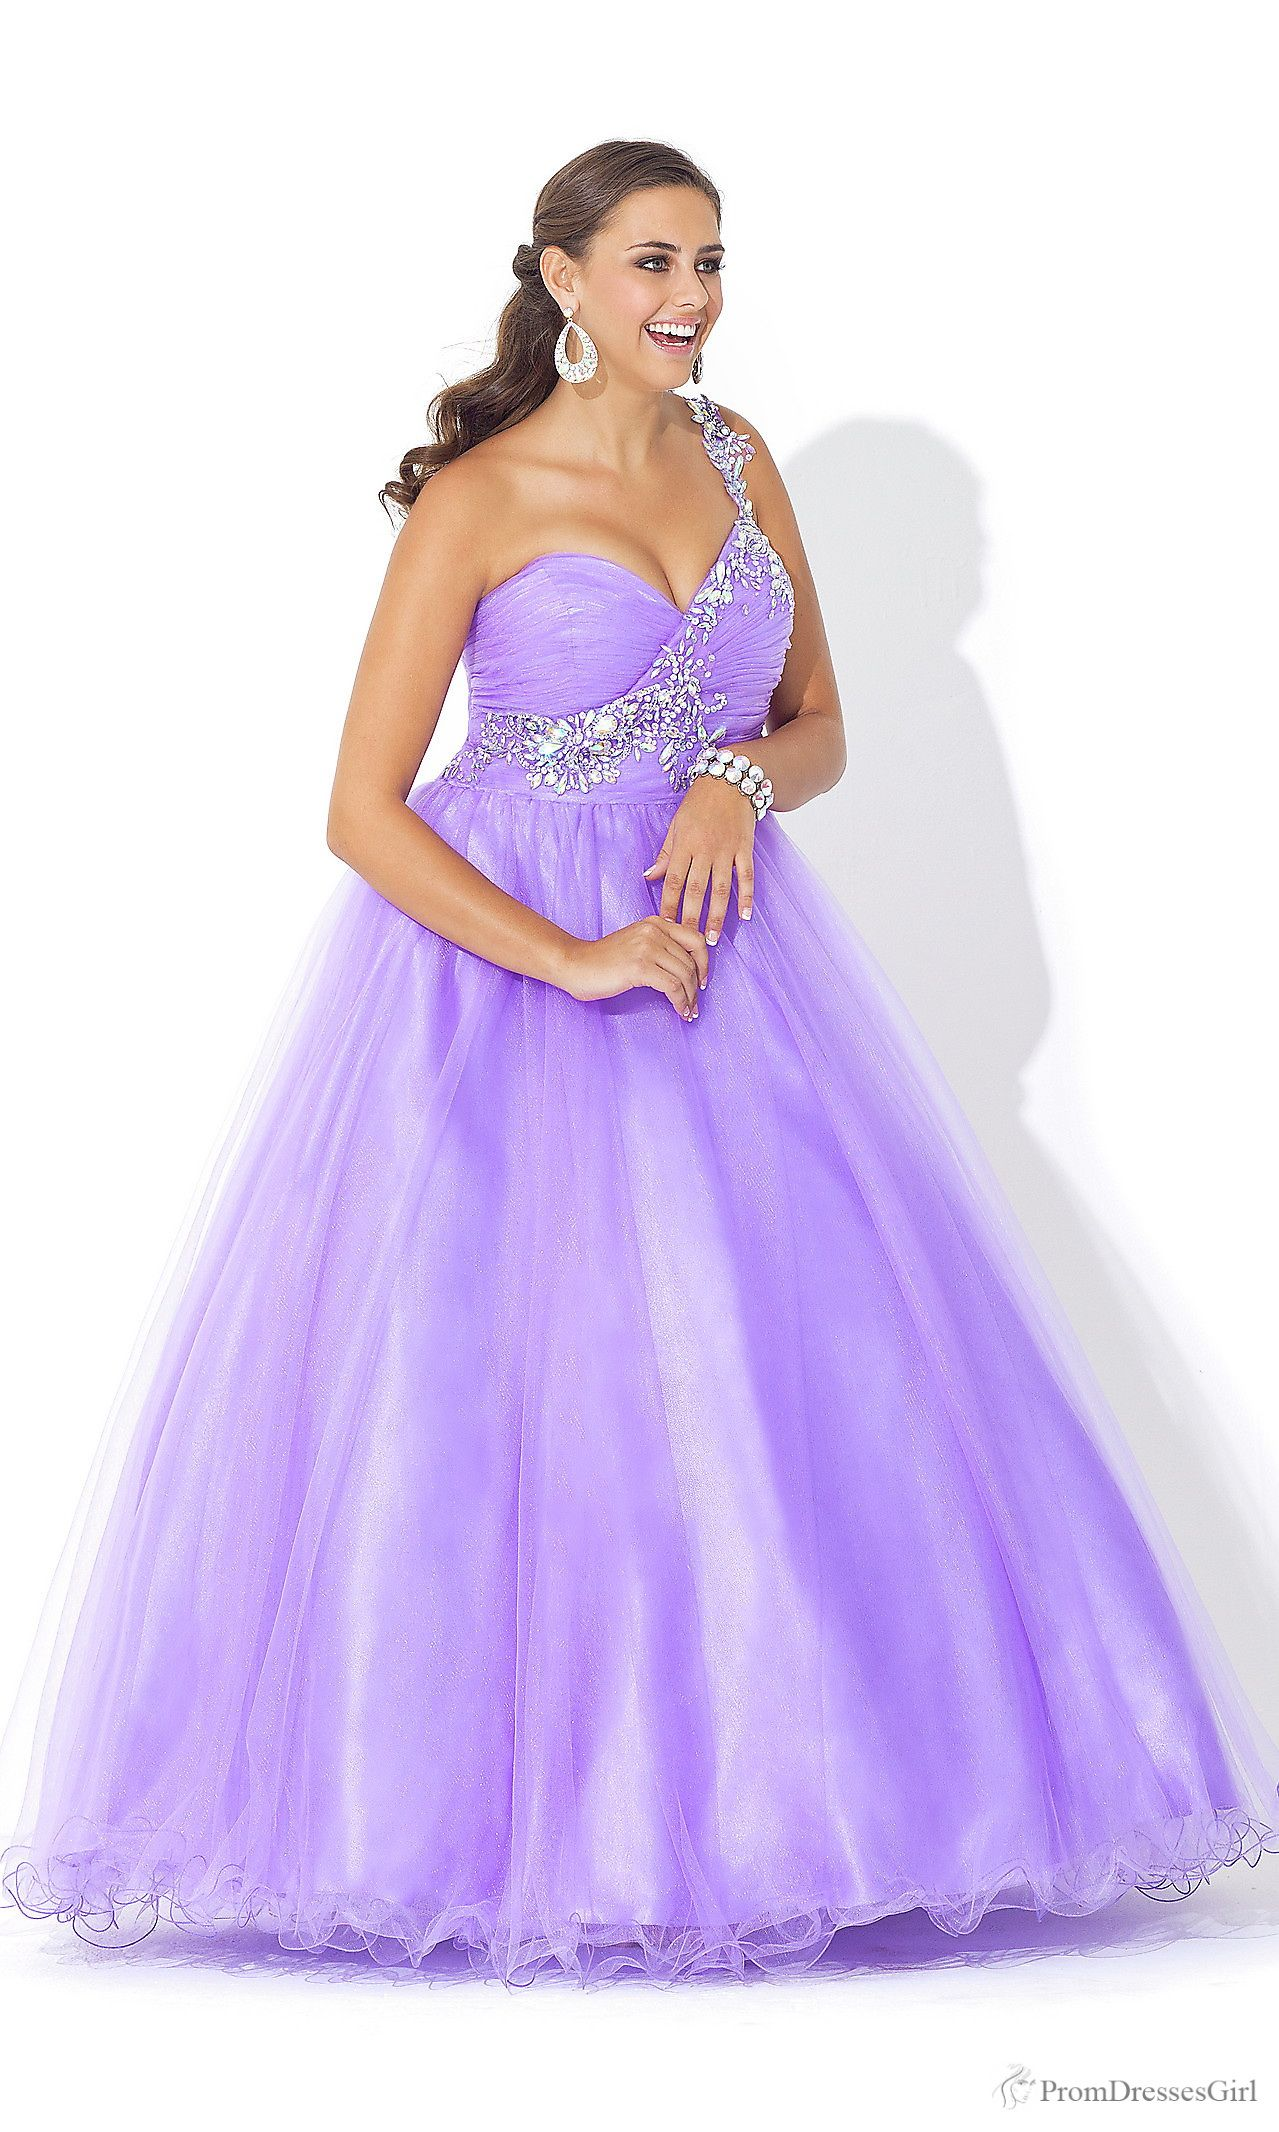 Plus Size Prom Dress | alta costura | Pinterest | Vestidos dama ...